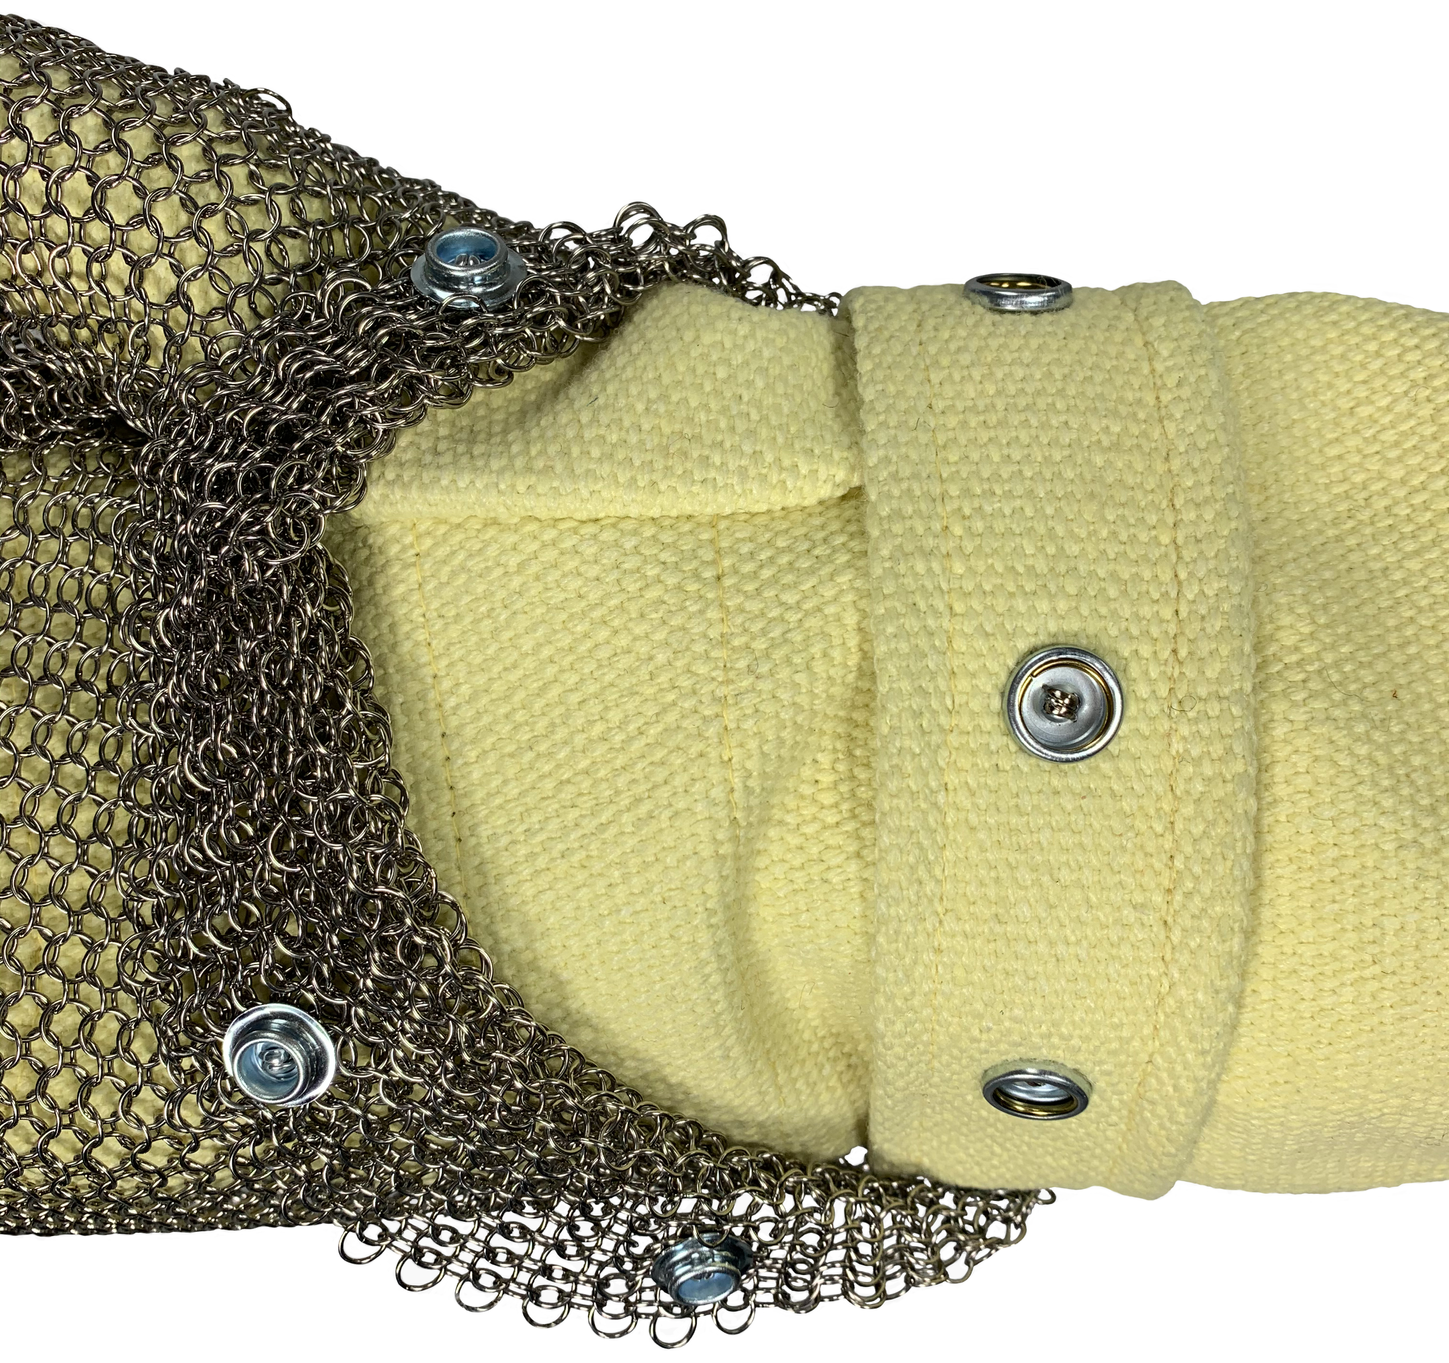 chicago-protective-apparel-para-aramid-blend-mitten-with-stainless-steel-chain-mail-overmitt-detail.png